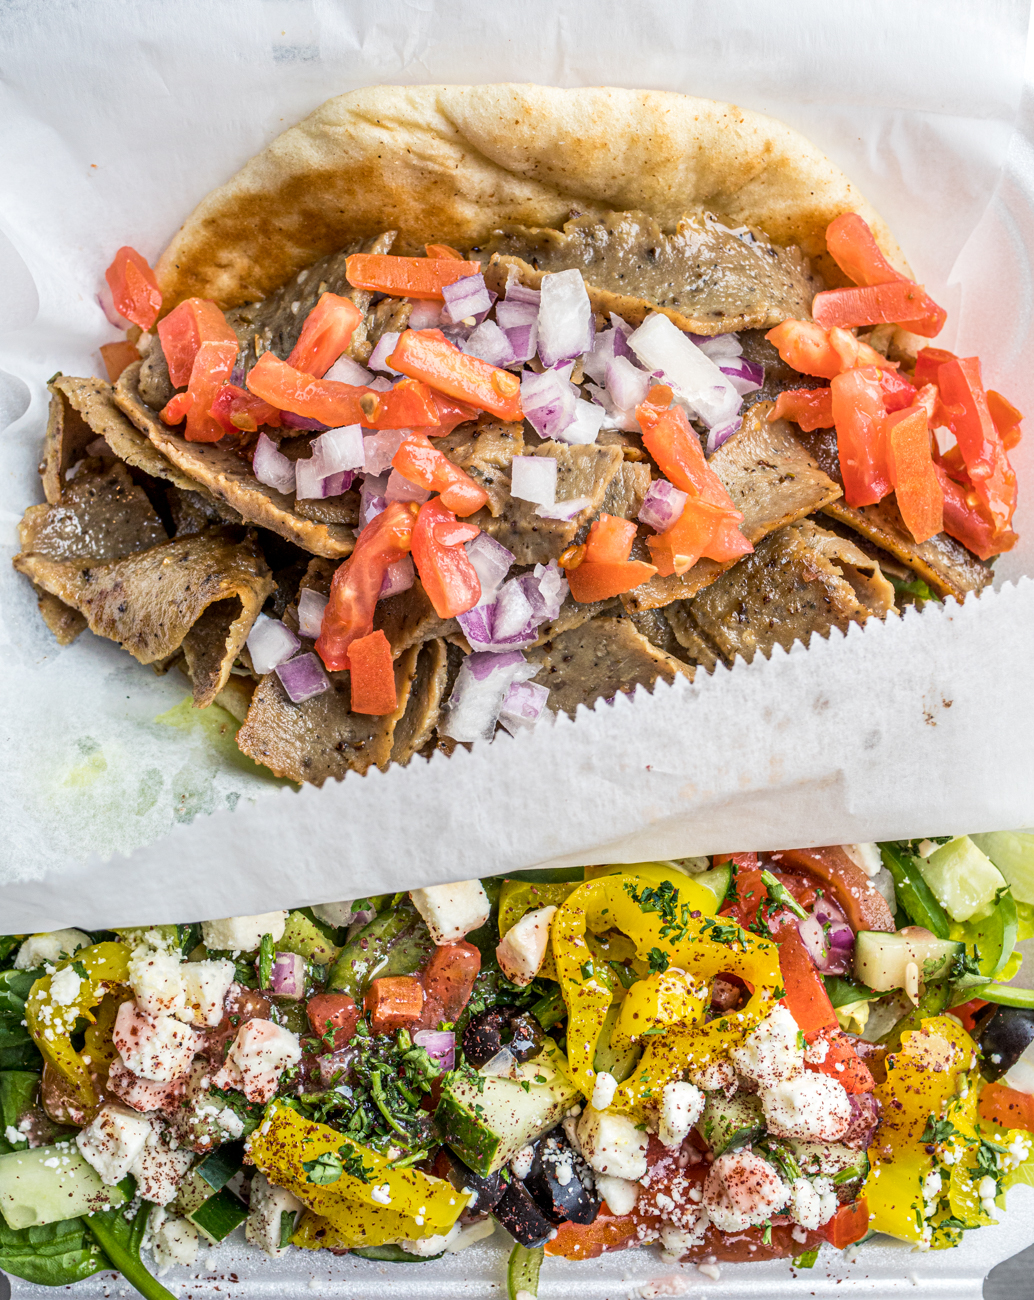 Gyro Platter served with lettuce, tomato, onion, and cucumber sauce / Image: Catherine Viox{ }// Published: 1.26.20